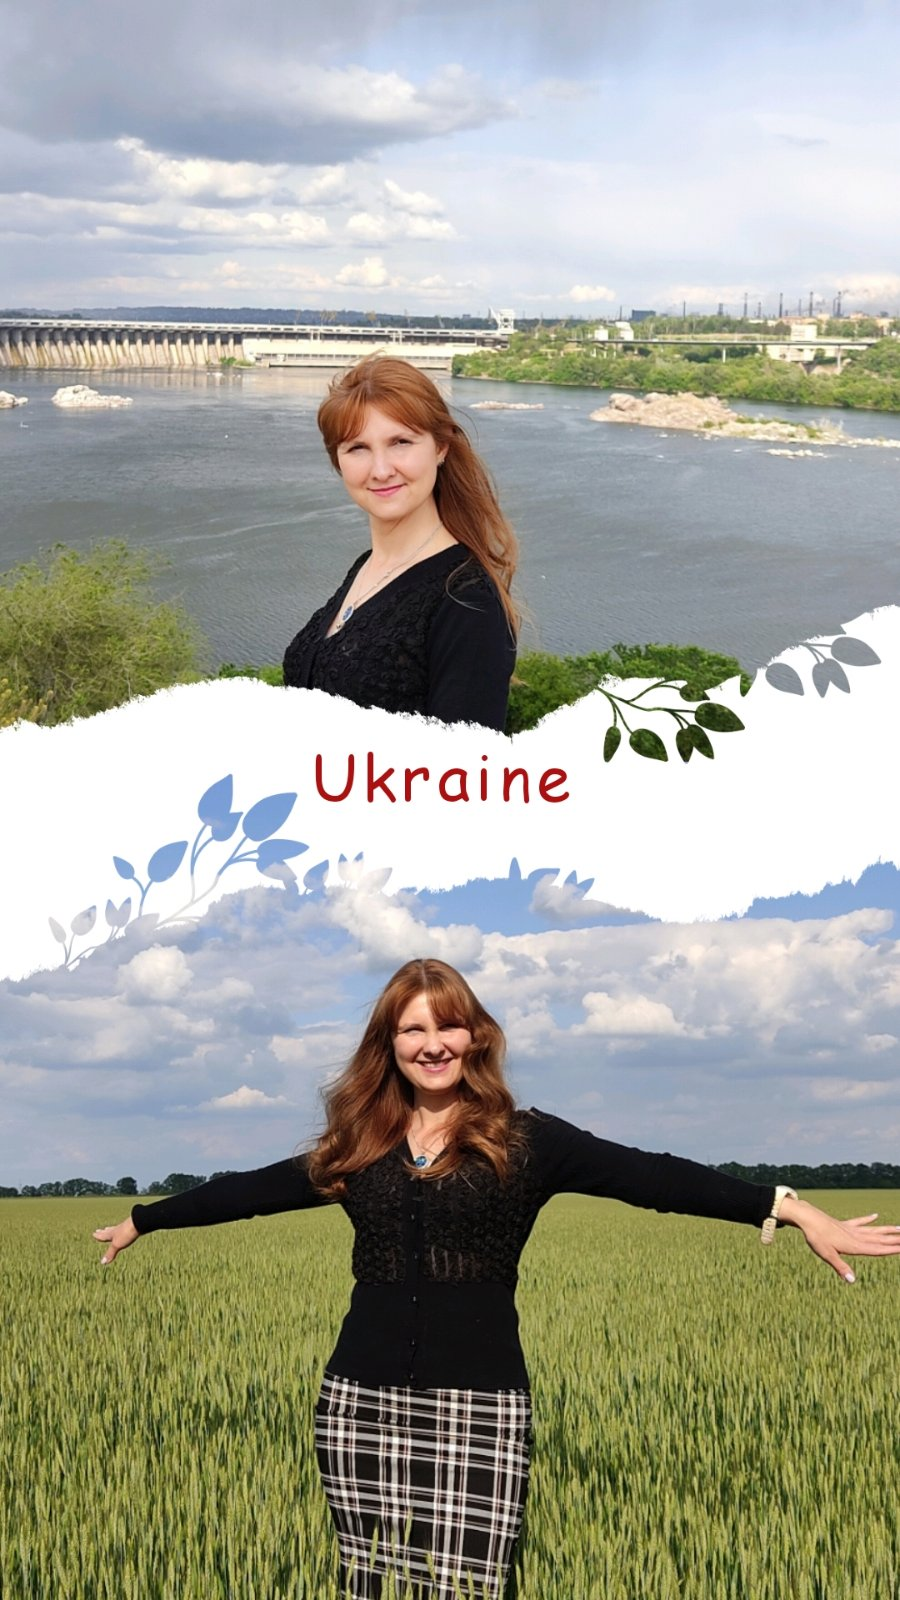 Ukraine is one of those countries that may exceed your expectations.